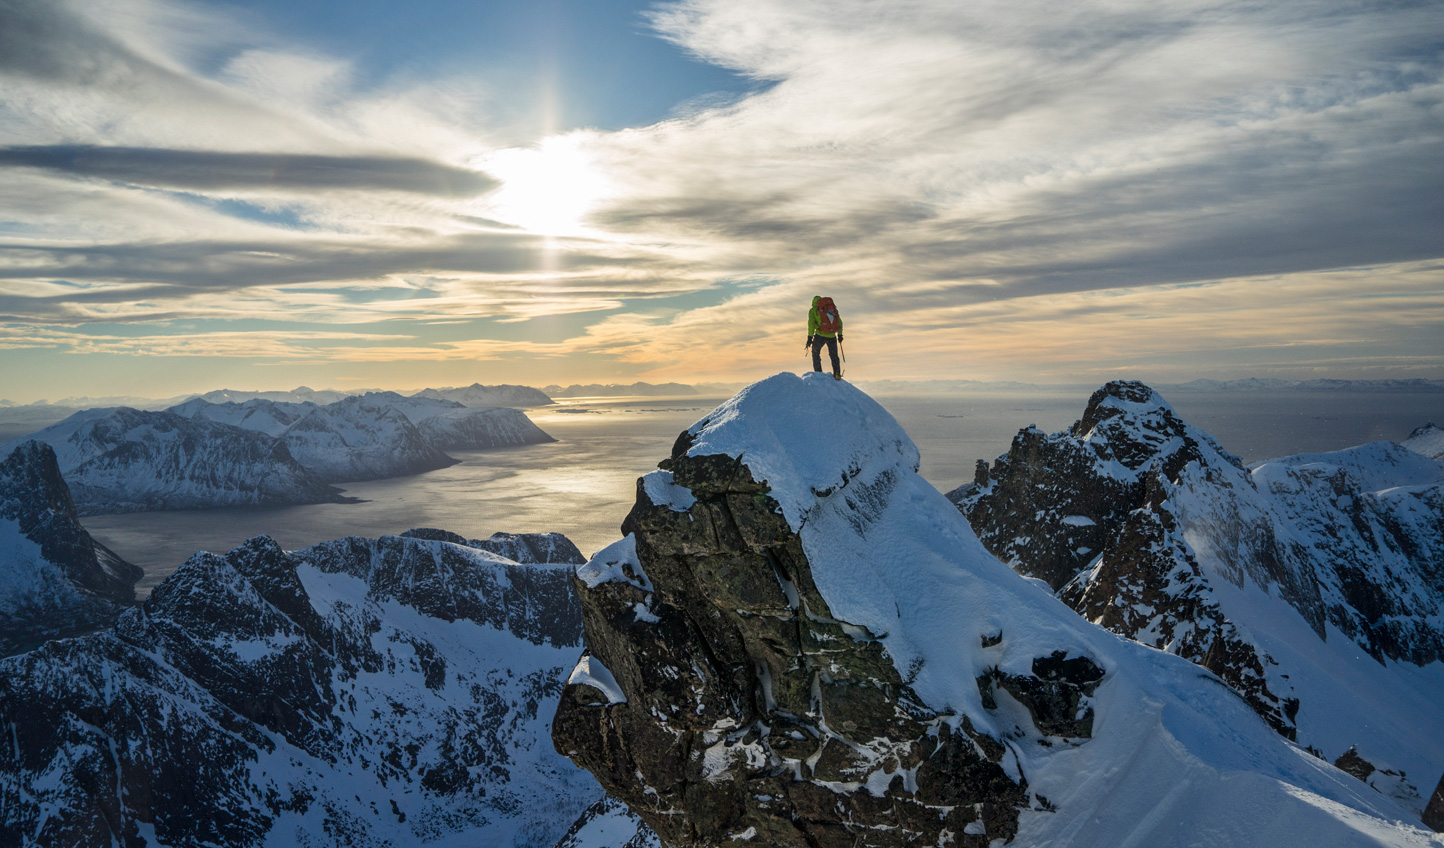 Conquer mountains before skiing back down them